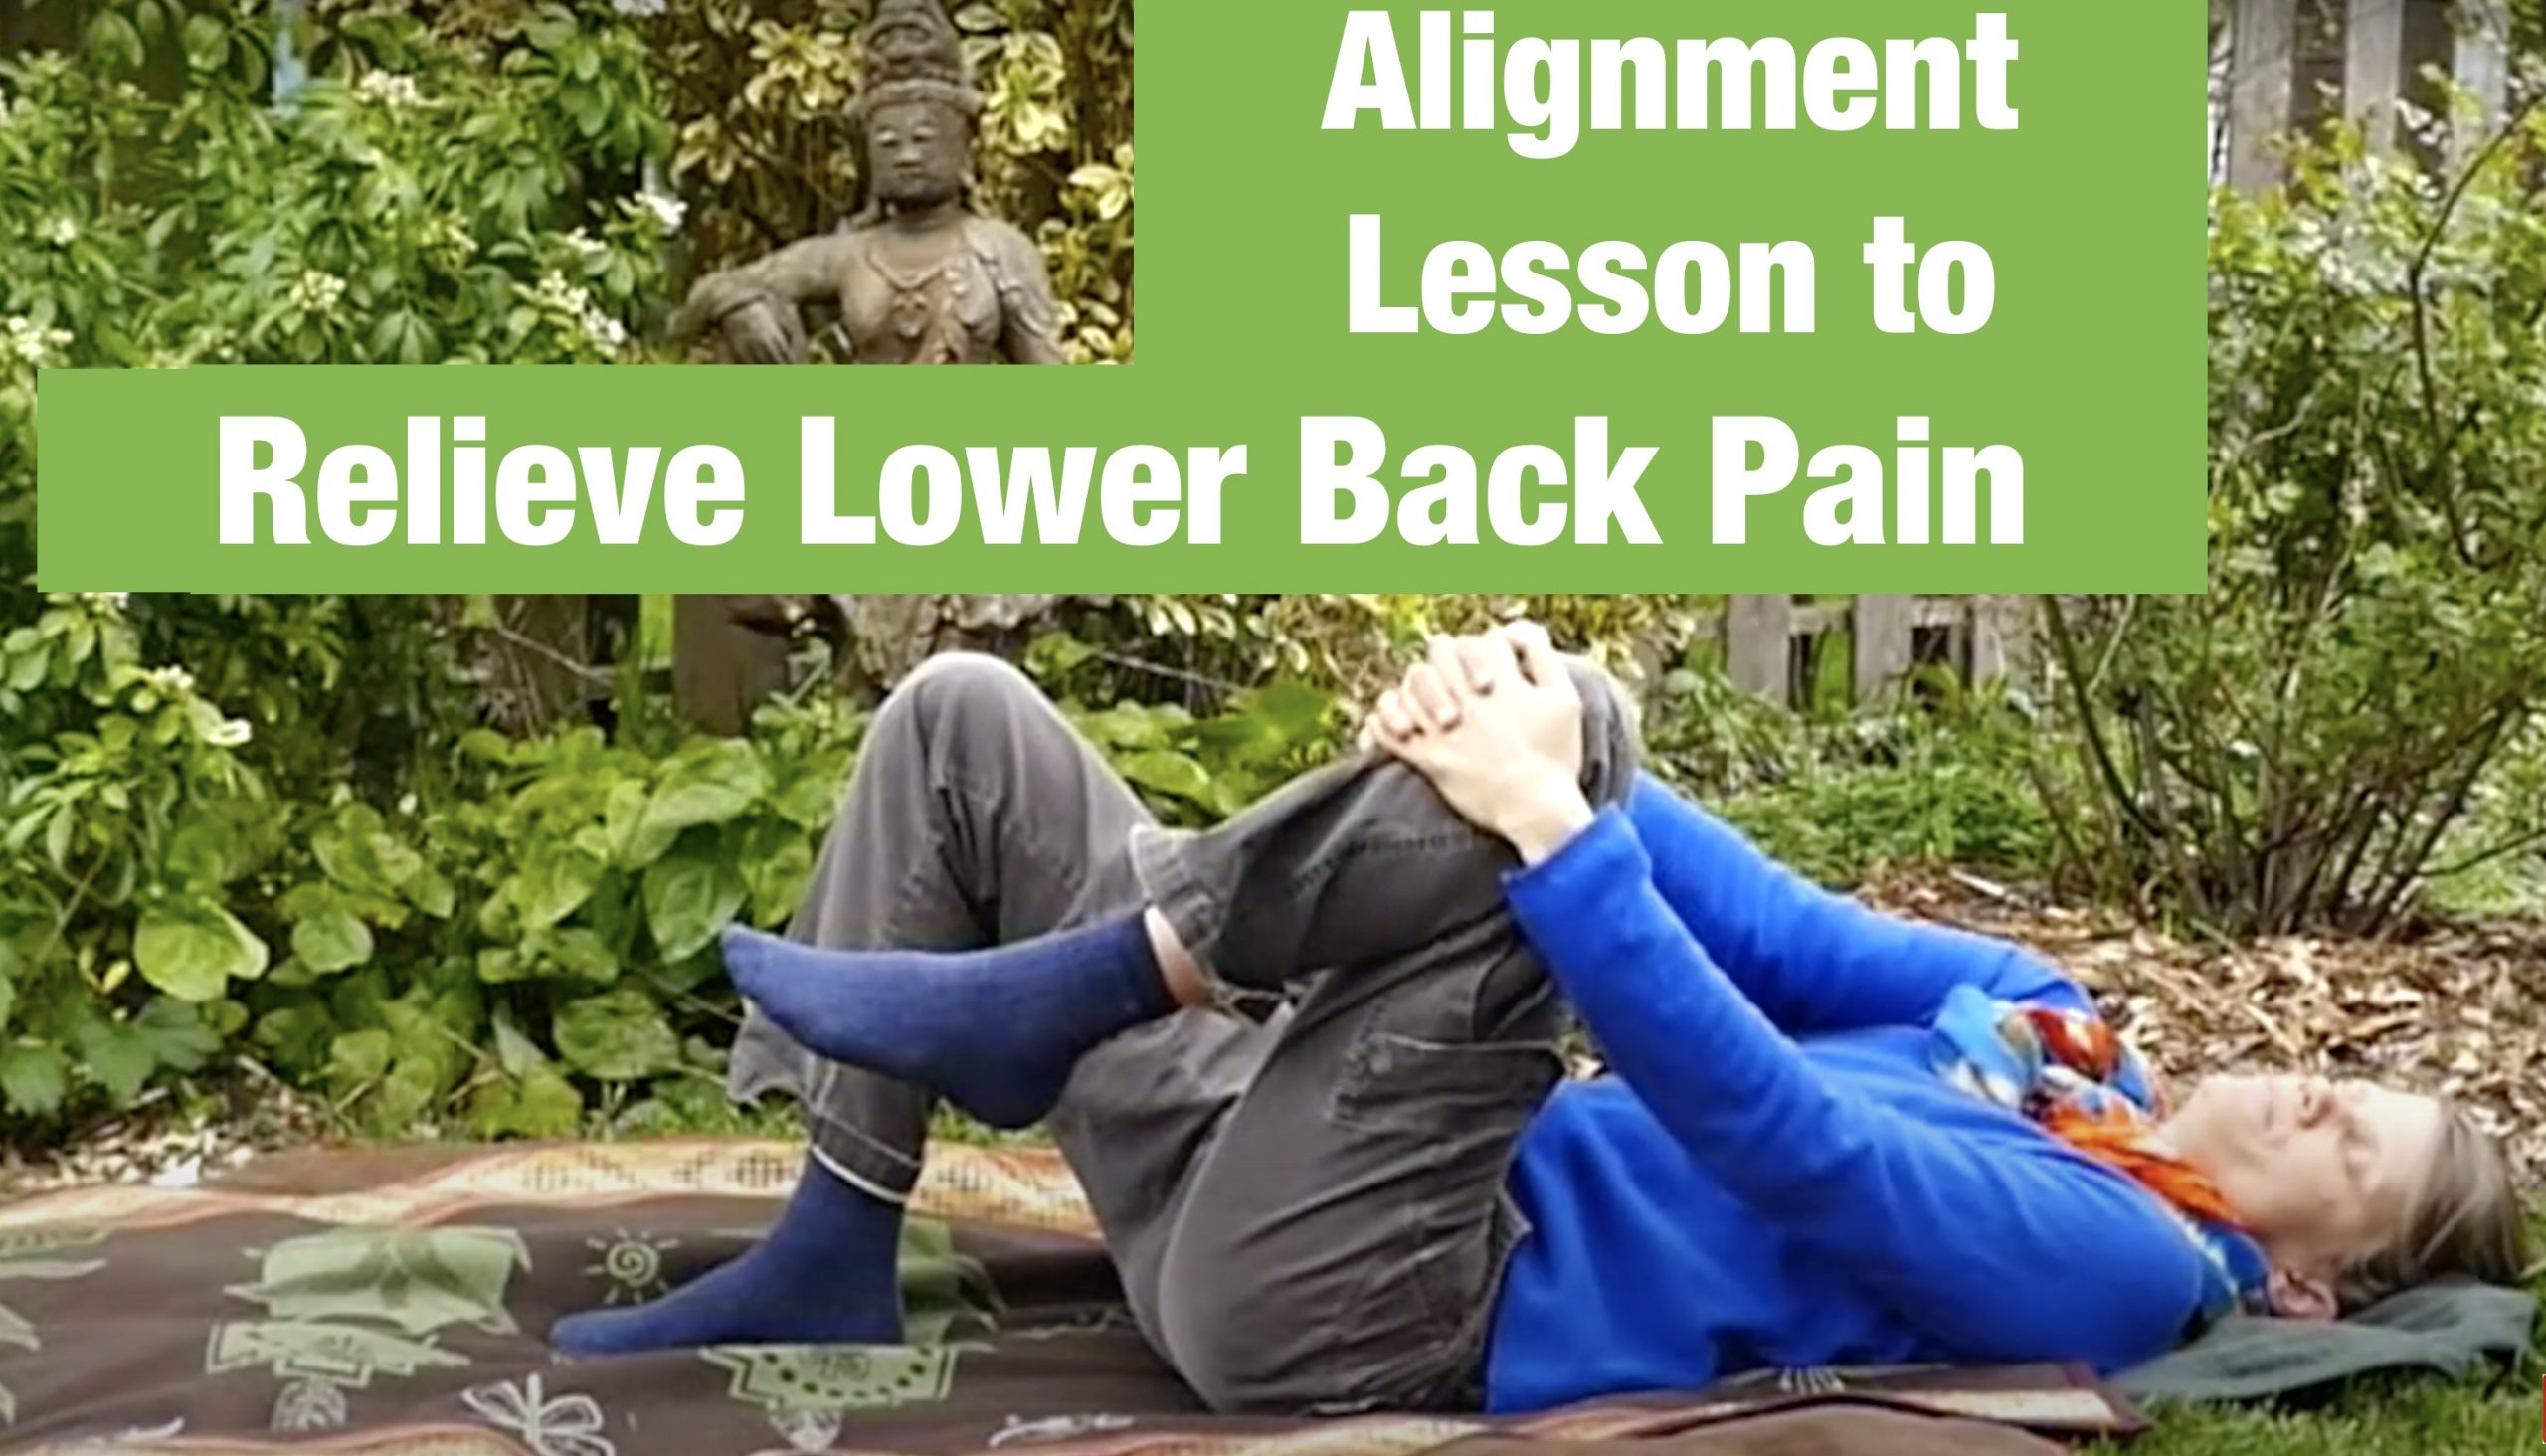 Relieve Lower Back Pain Video